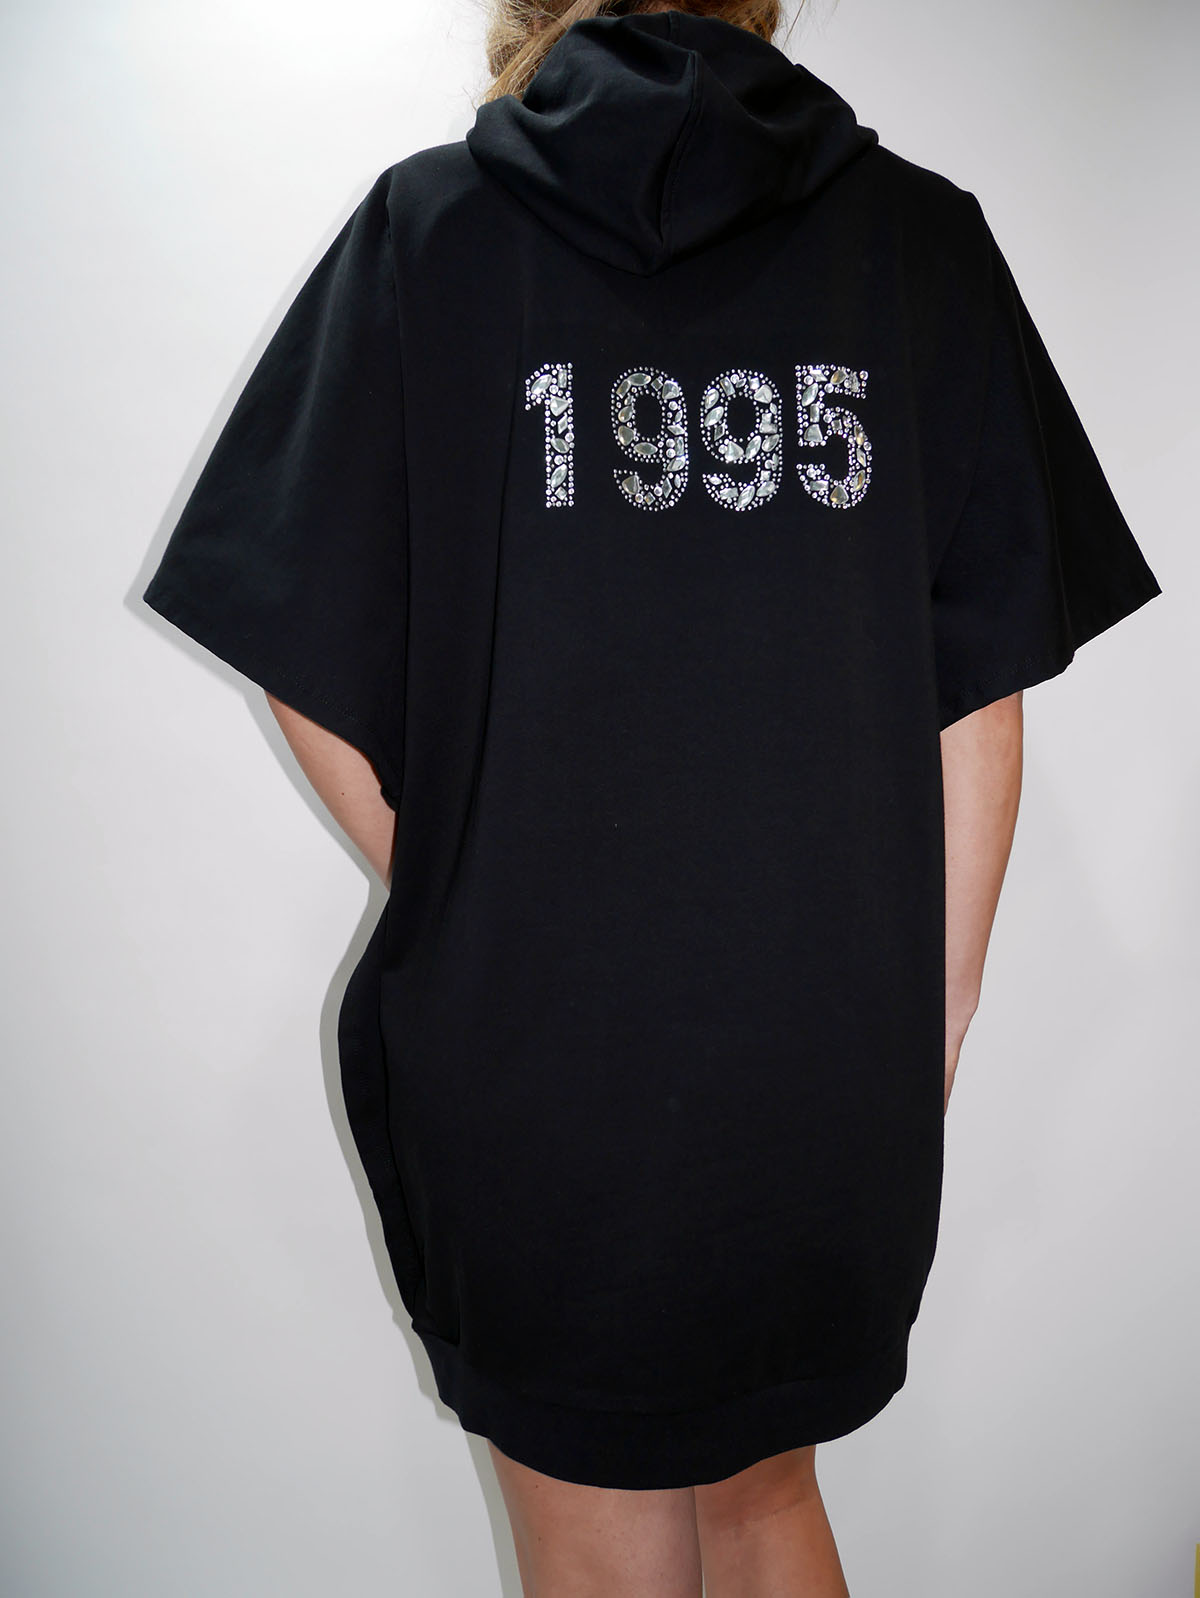 T19133 F0766 SWEATSHIRT Black 3